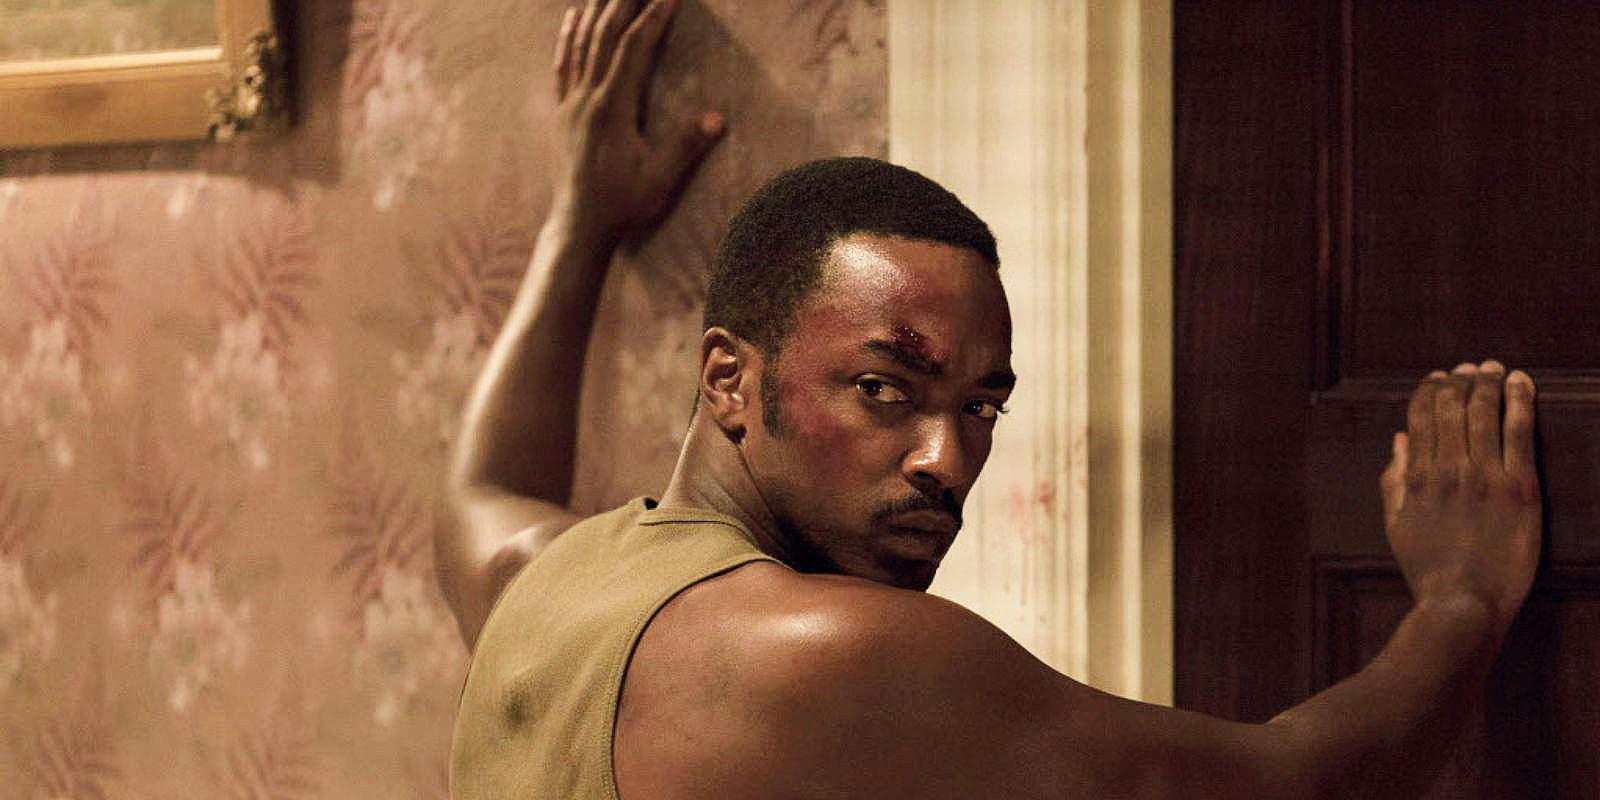 Detroit is a harrowing, relentless and intensely angry film – as it should be